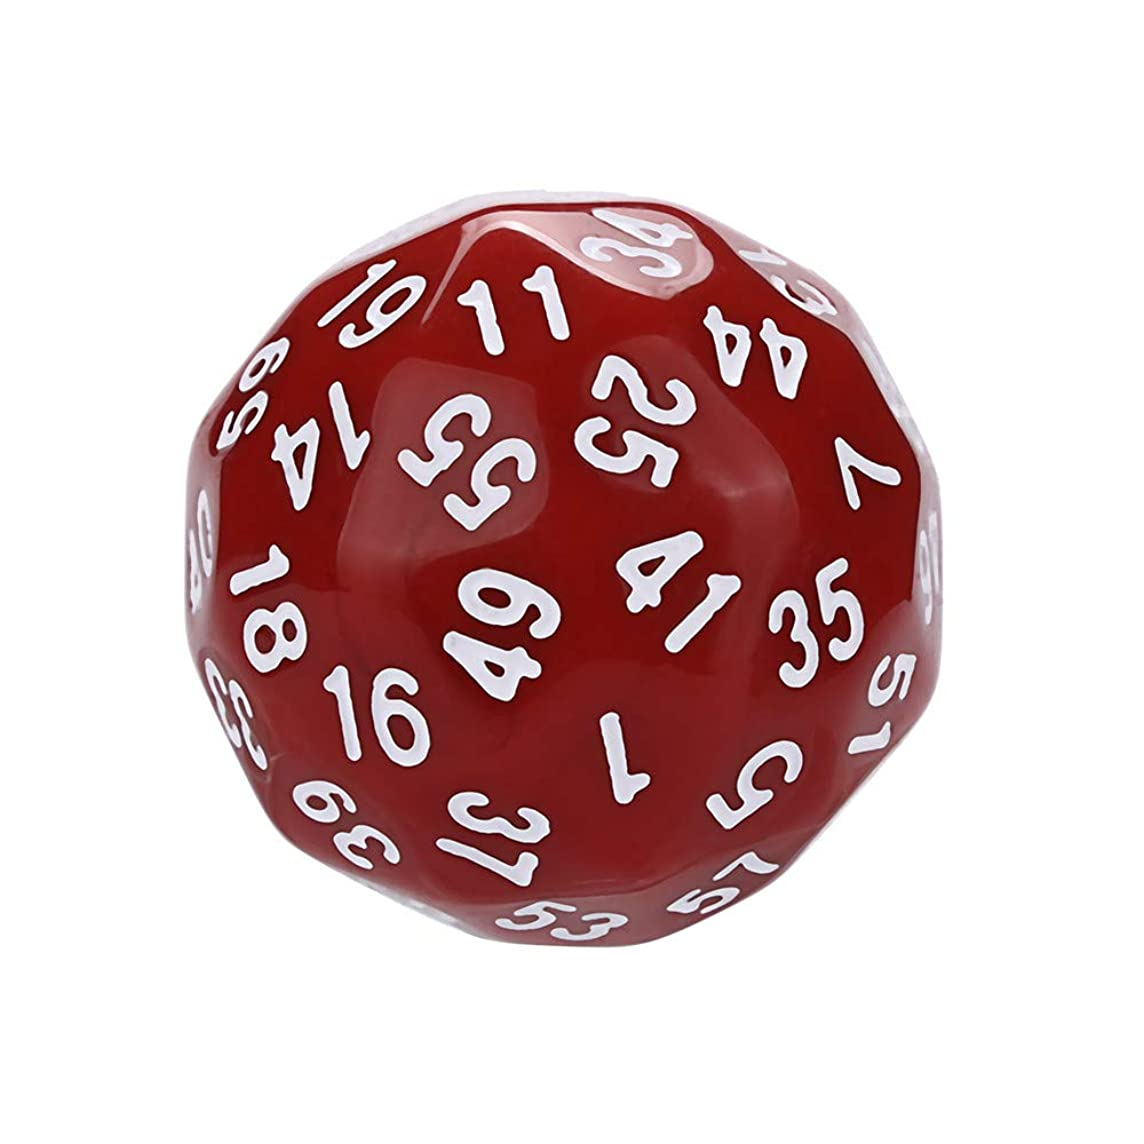 Dreamyth- 1Pcs for Game Dungeons & Dragons Polyhedral D60 Multi Sided Acrylic Dice Affordable